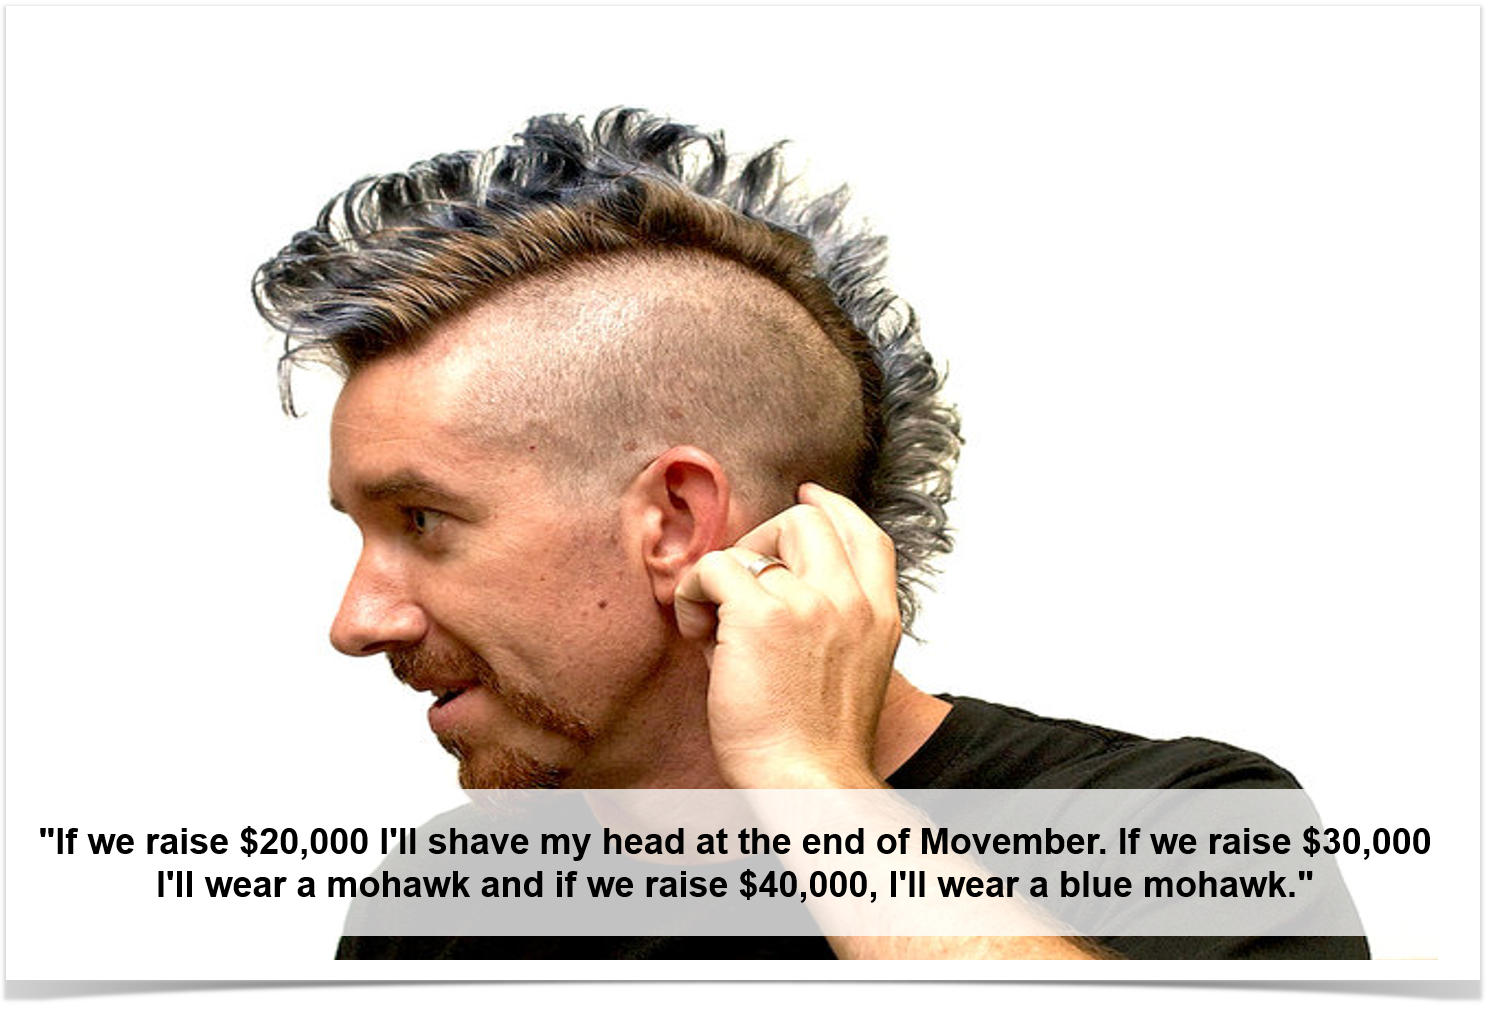 Scott with mohawk